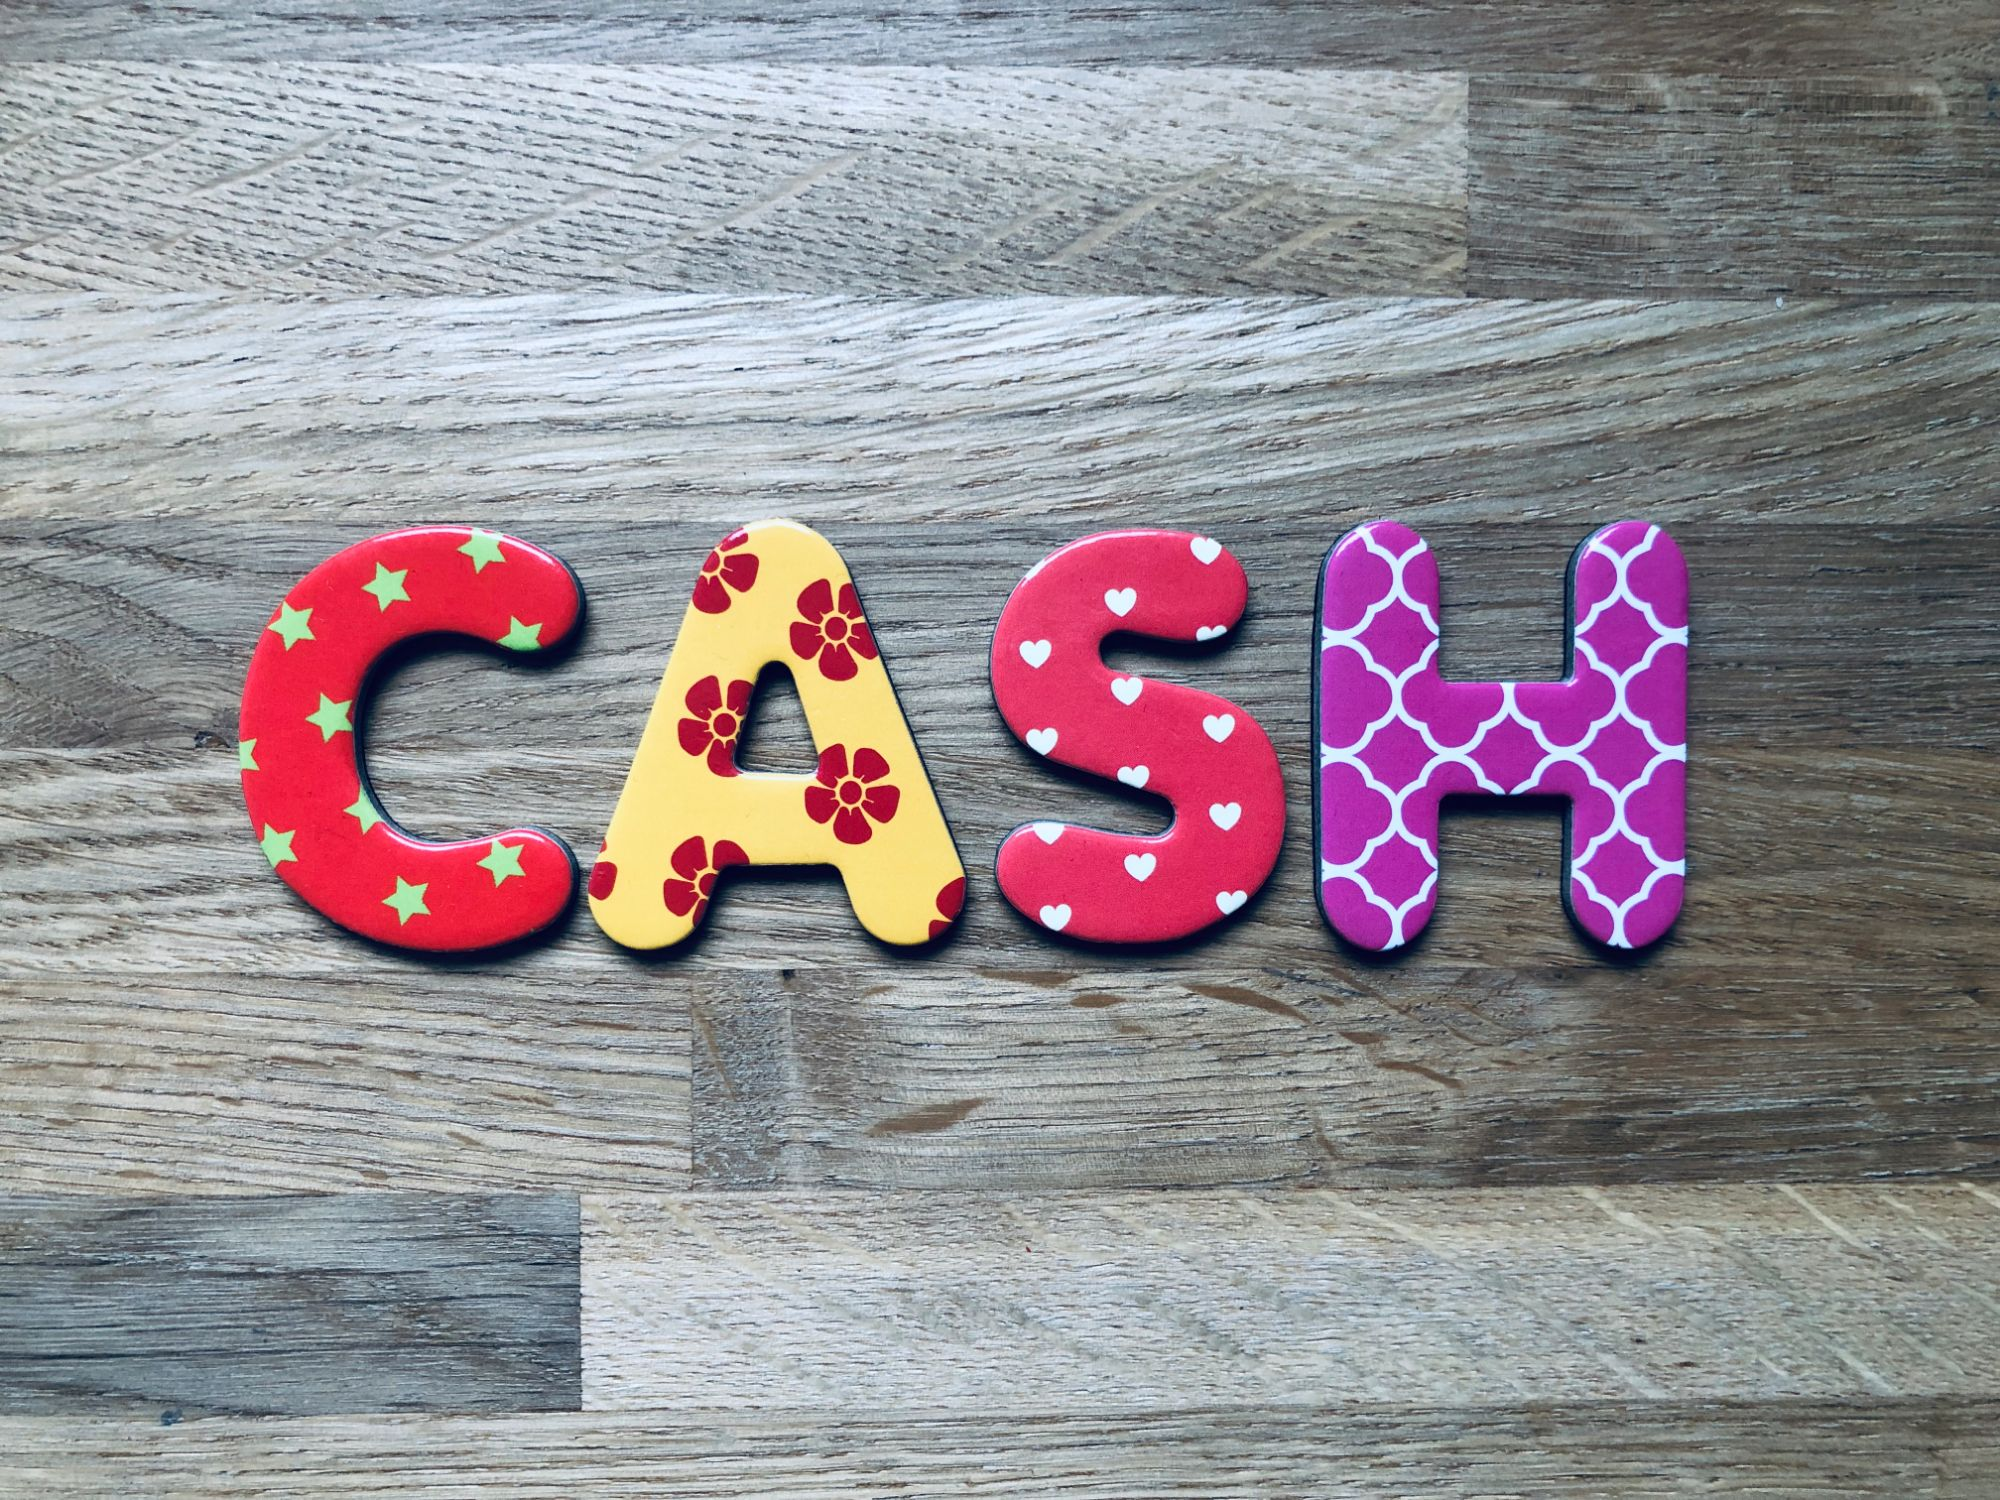 Free stock images for money bloggers blog wood background 'CASH' cash alphabet lettering letters colourful budget spending